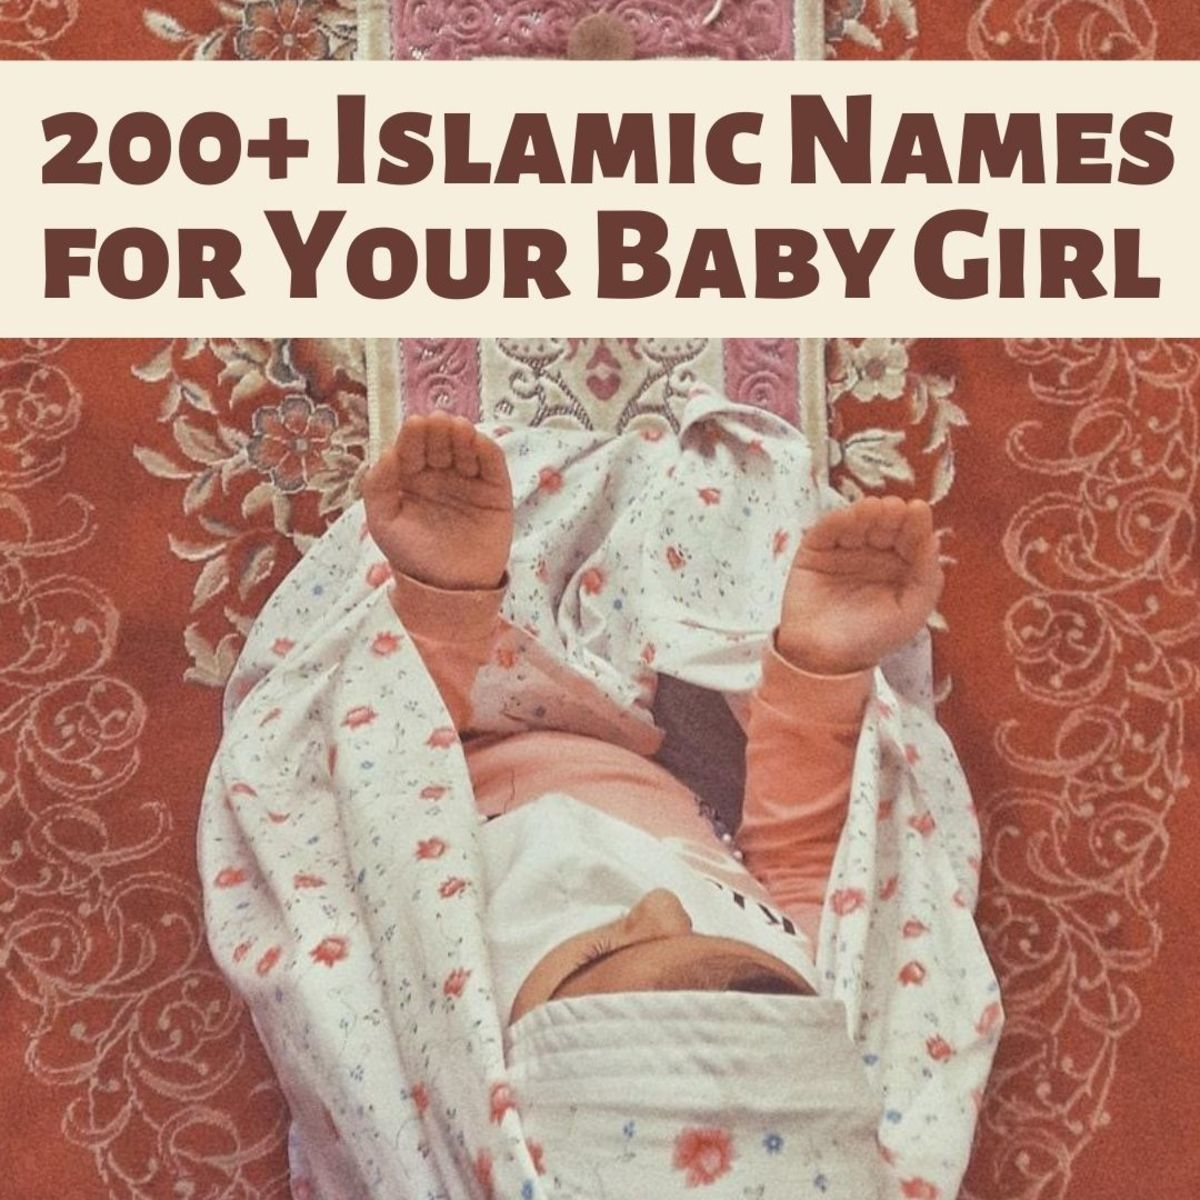 If you want to honor Islamic tradition, you should pick a name derived from the Qur'an.